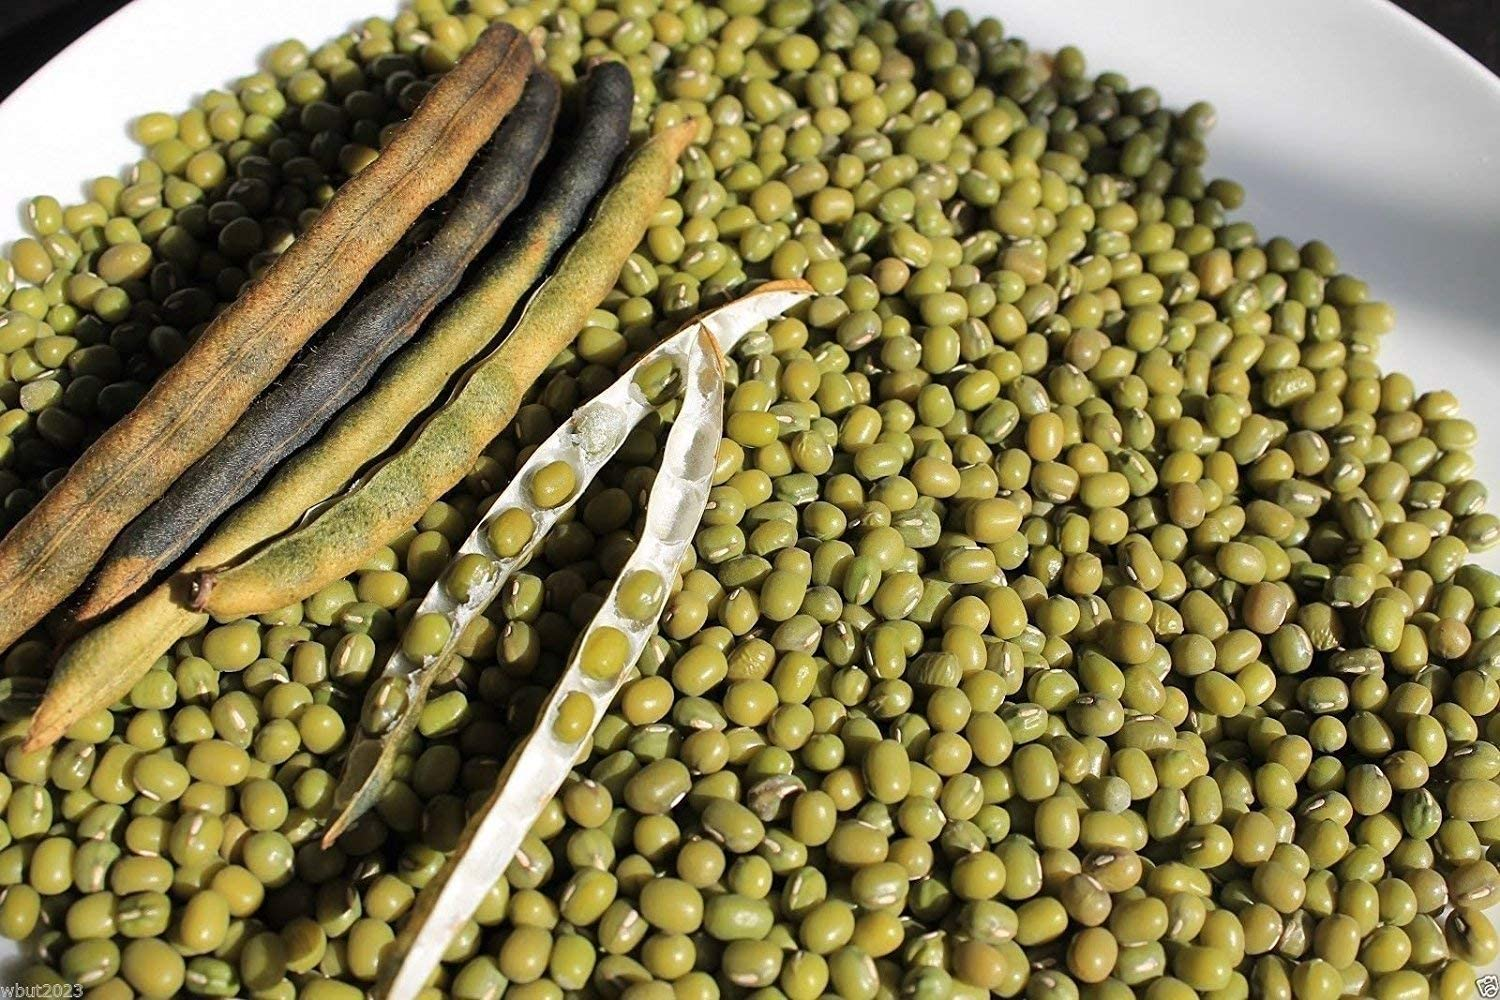 100 Seeds Organic Mung Bean (Green) Also Known As Chori, for Spouting,Food or Growing